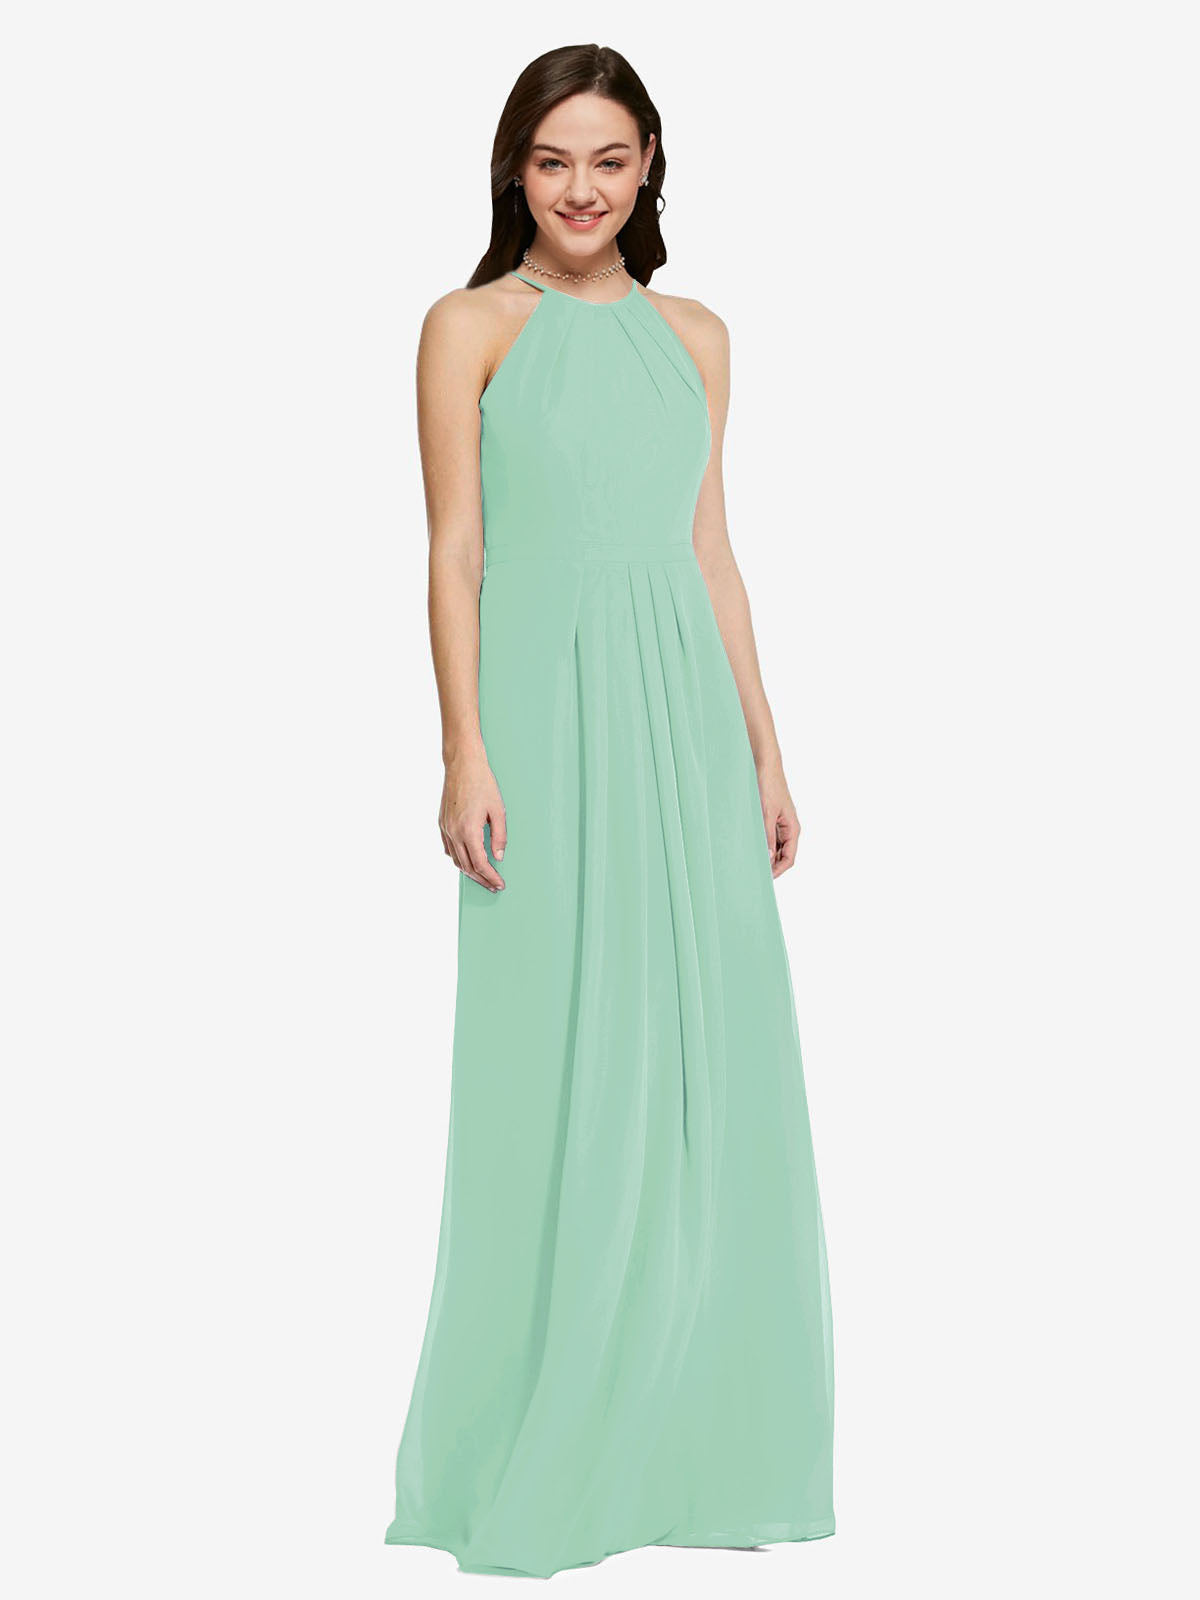 Long Sheath High Neck Halter Sleeveless Mint Green Chiffon Bridesmaid Dress Koloti